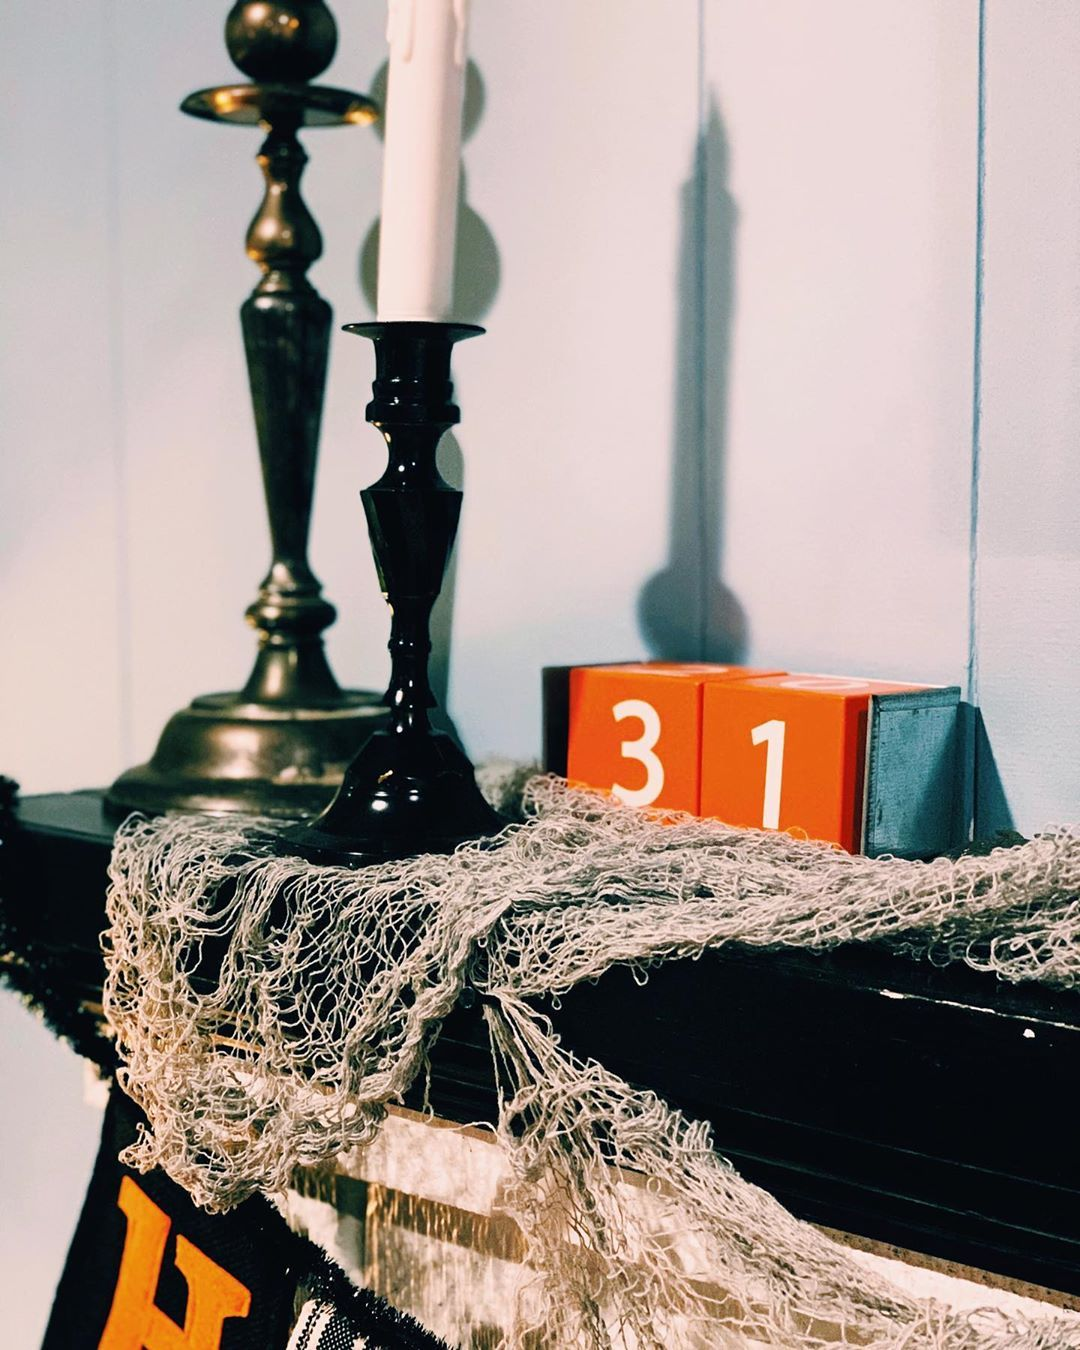 The 10 day count down is on! I'm in full Halloween mode now after our fun events at work over the weekend #booatthezoo . Lots of scary movies and fall candles over the next week! Here is a shot of my simple living room mantle. . Tune in mid week for a new blog post on creating a spooky chili bar, step by step! #chilibar